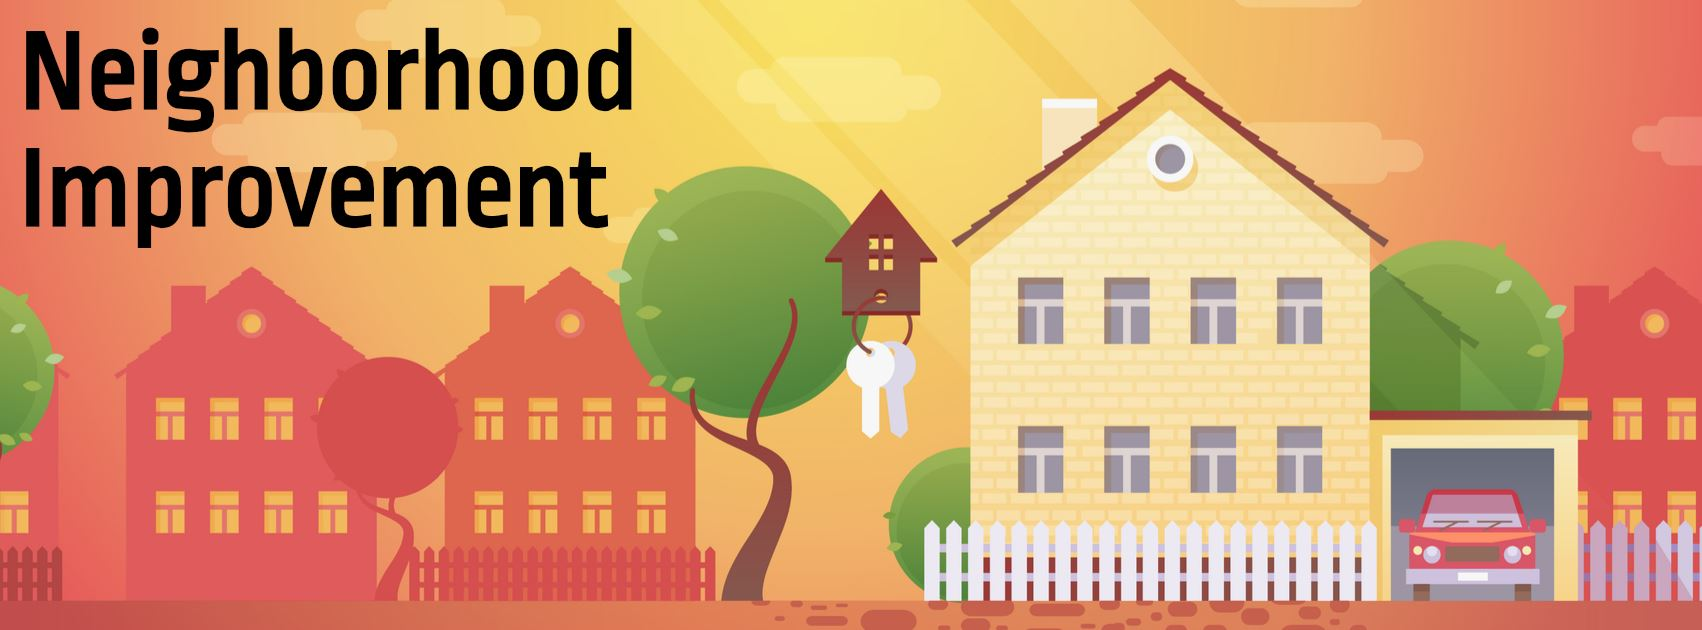 Neighborhood Improvement Program Committee graphic with images of houses